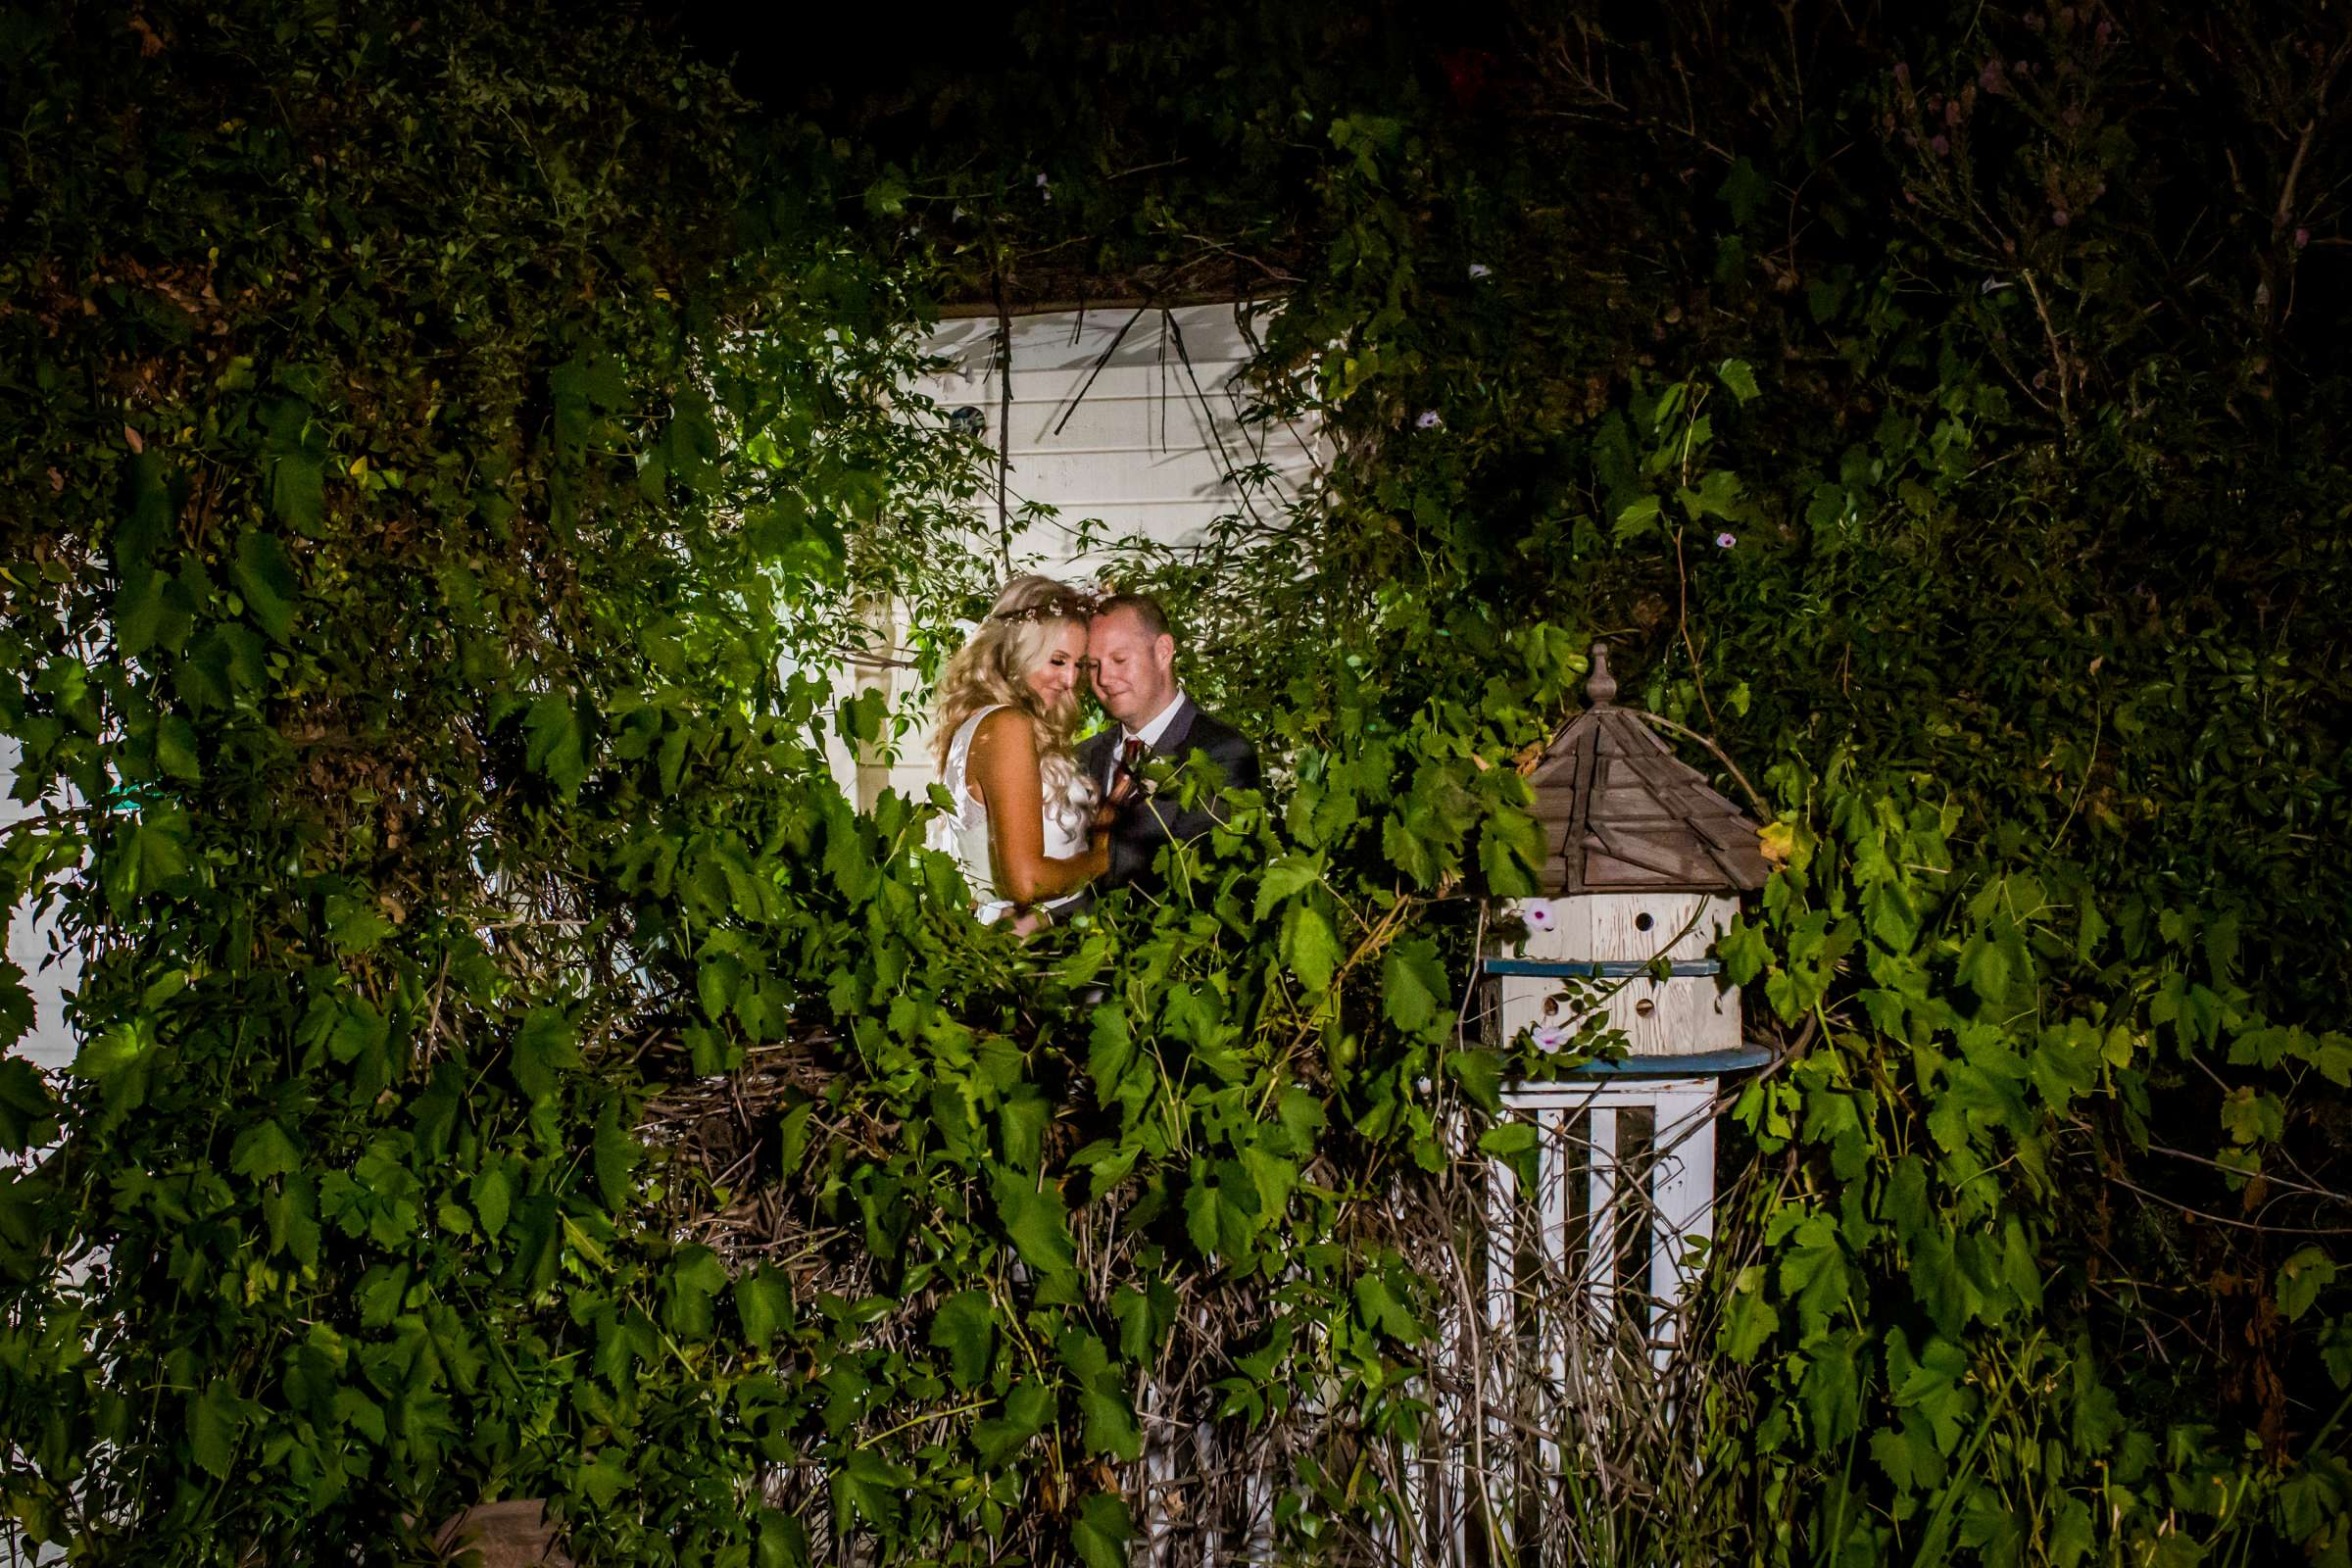 Twin Oaks House & Gardens Wedding Estate Wedding, Brittany and Sean Wedding Photo #26 by True Photography